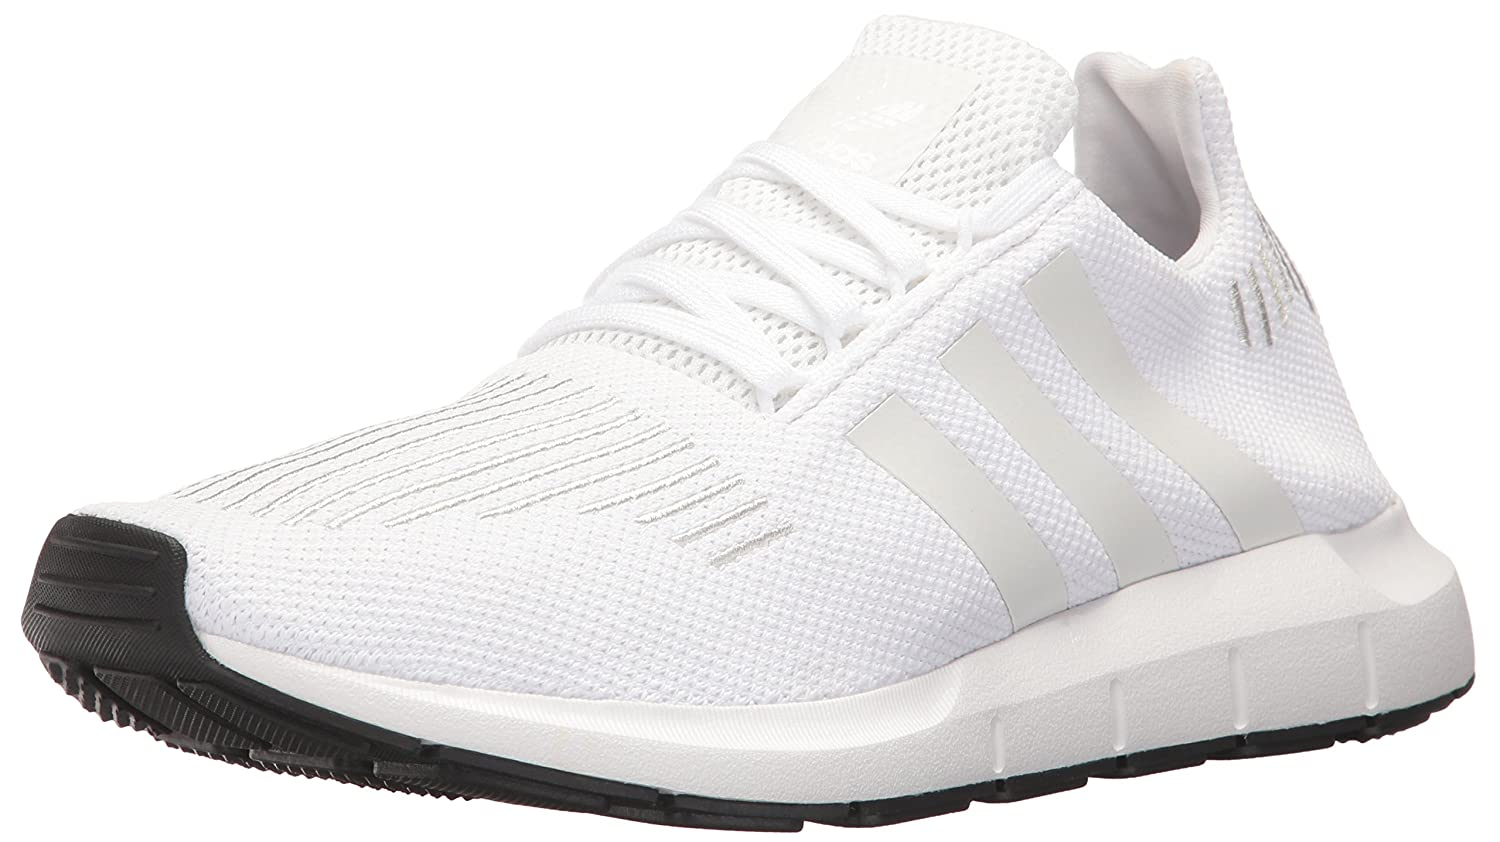 check out 09227 f3649 Amazon.com   adidas Originals Men s Swift Run Shoes, WHITE CRYSTAL WHITE  BLACK, 8.5 M US   Running